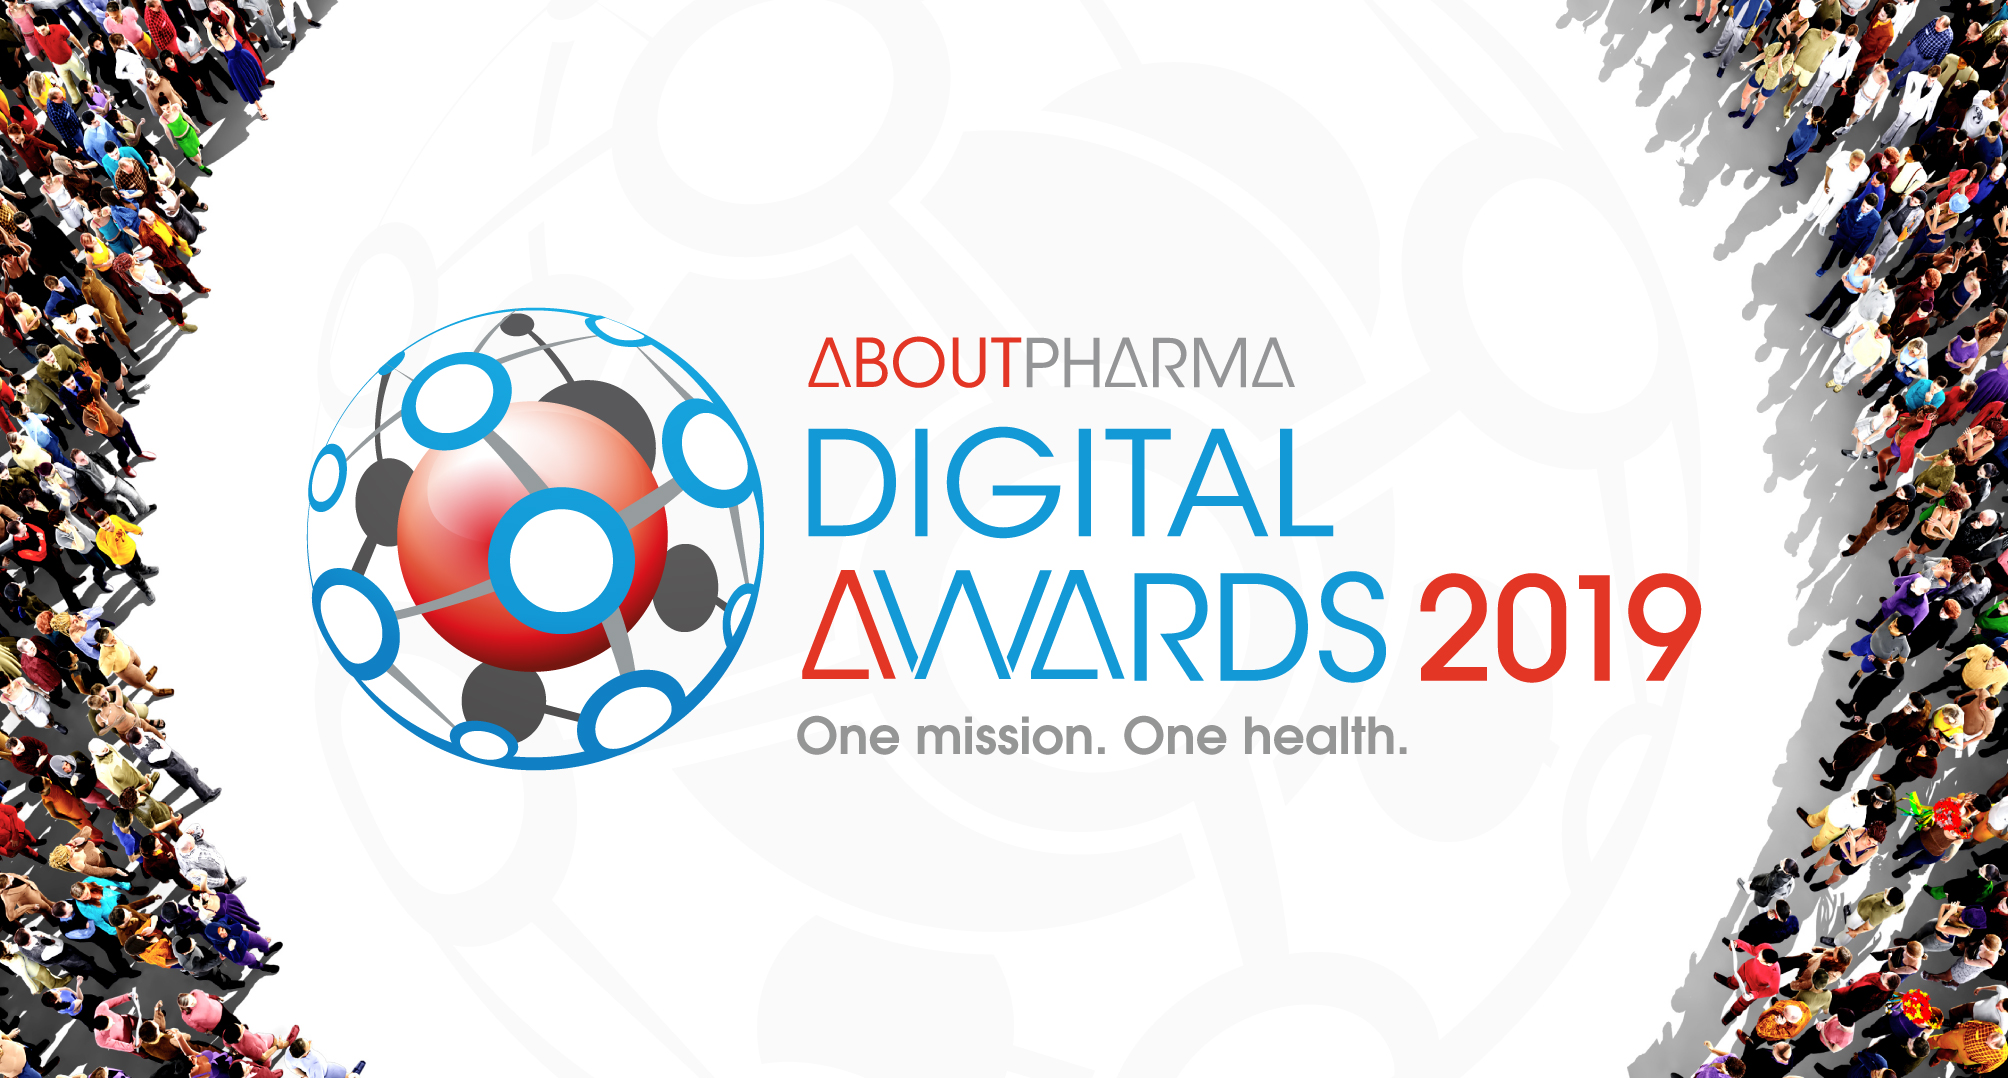 AboutPharma Digital Awards 2019